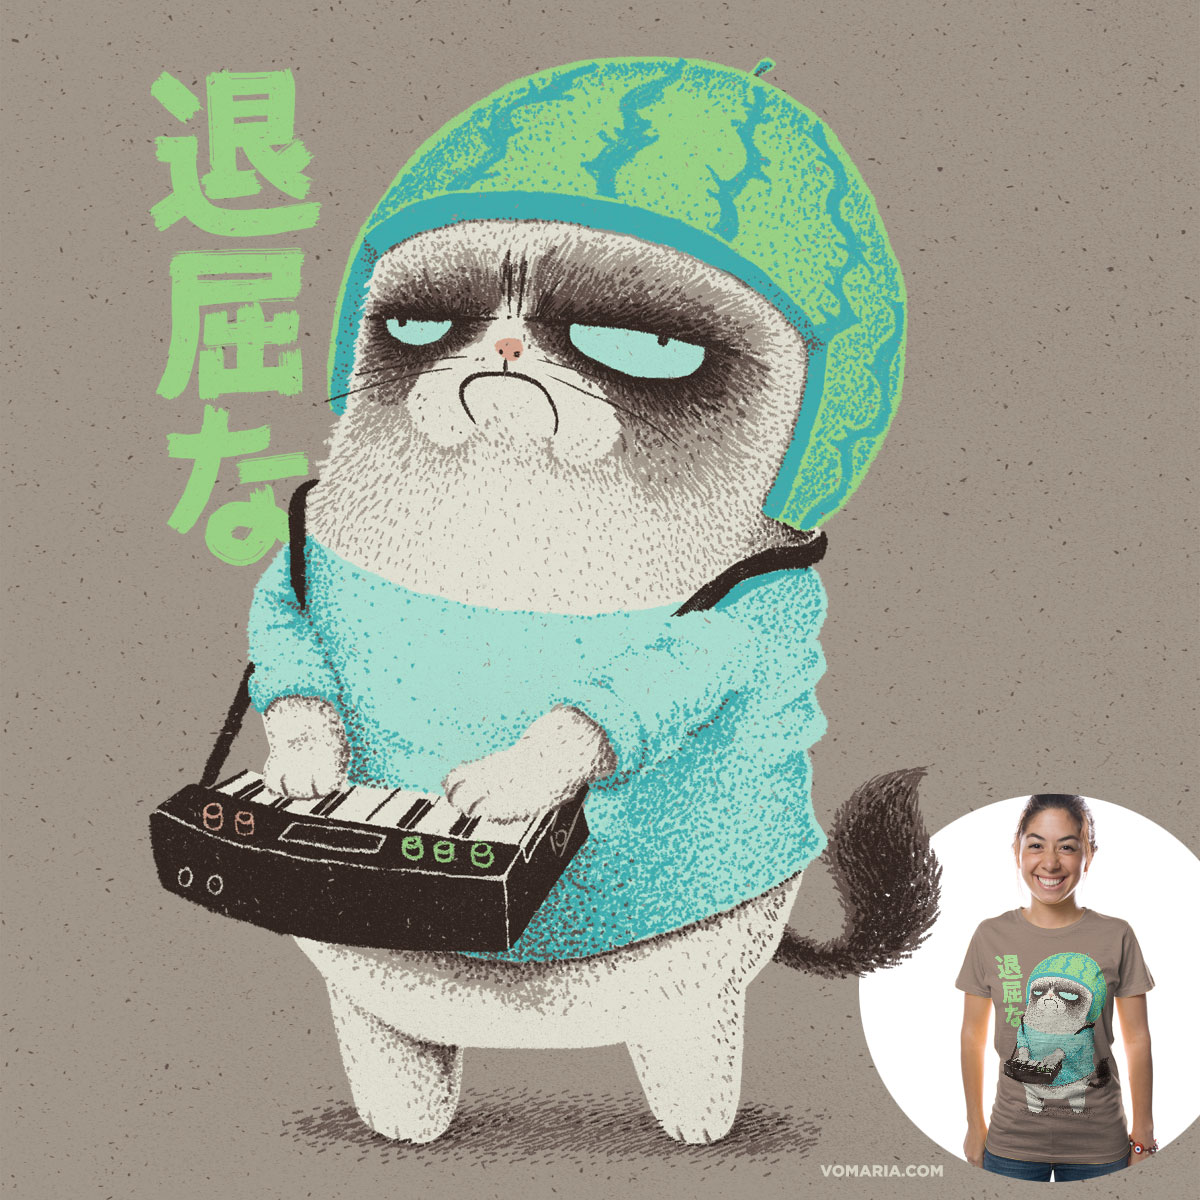 Boring by vo maria on Threadless